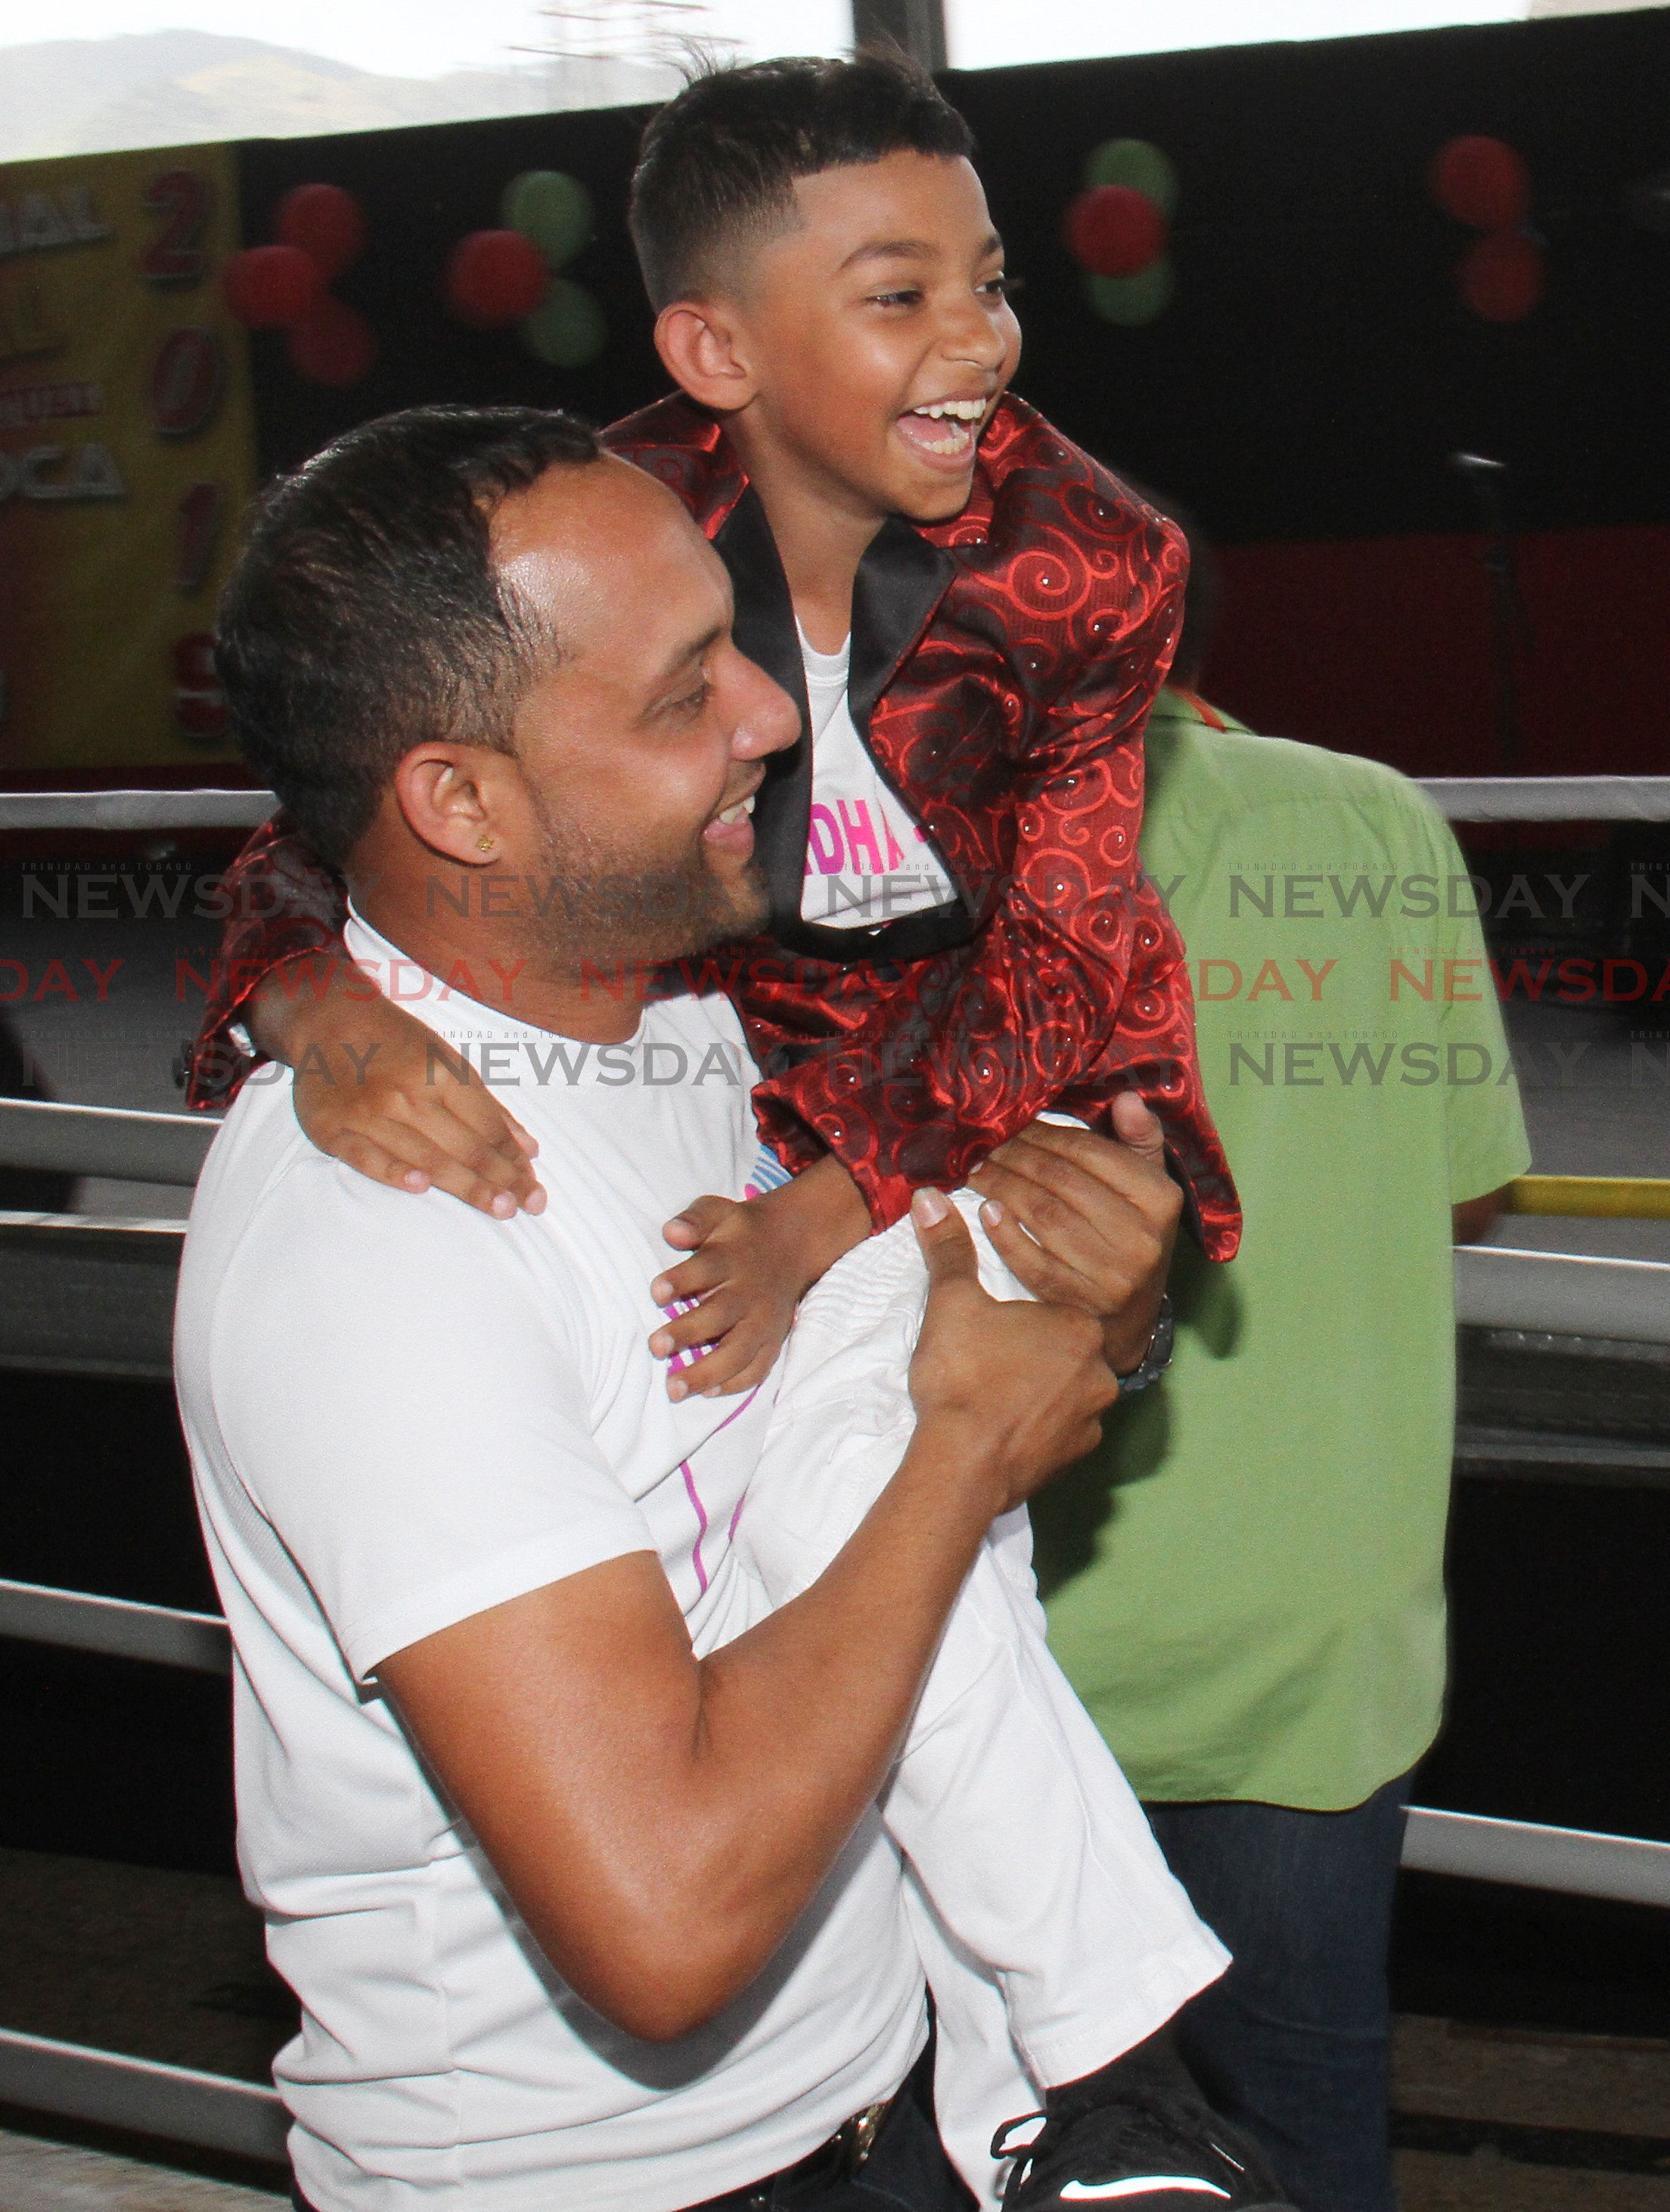 Avindha Singh of Tamana Hindu School, is lifted by his music teacher Rishi Singh, after he won the 2019 School's Intellectual National ChutneySoca Monarch Competition, with his song Take Your Education, in the Primary School category, Grand Stand, Queen's Park Savannah, Port of Spain.  PHOTO:ANGELO M. MARCELLE 27-02-2019